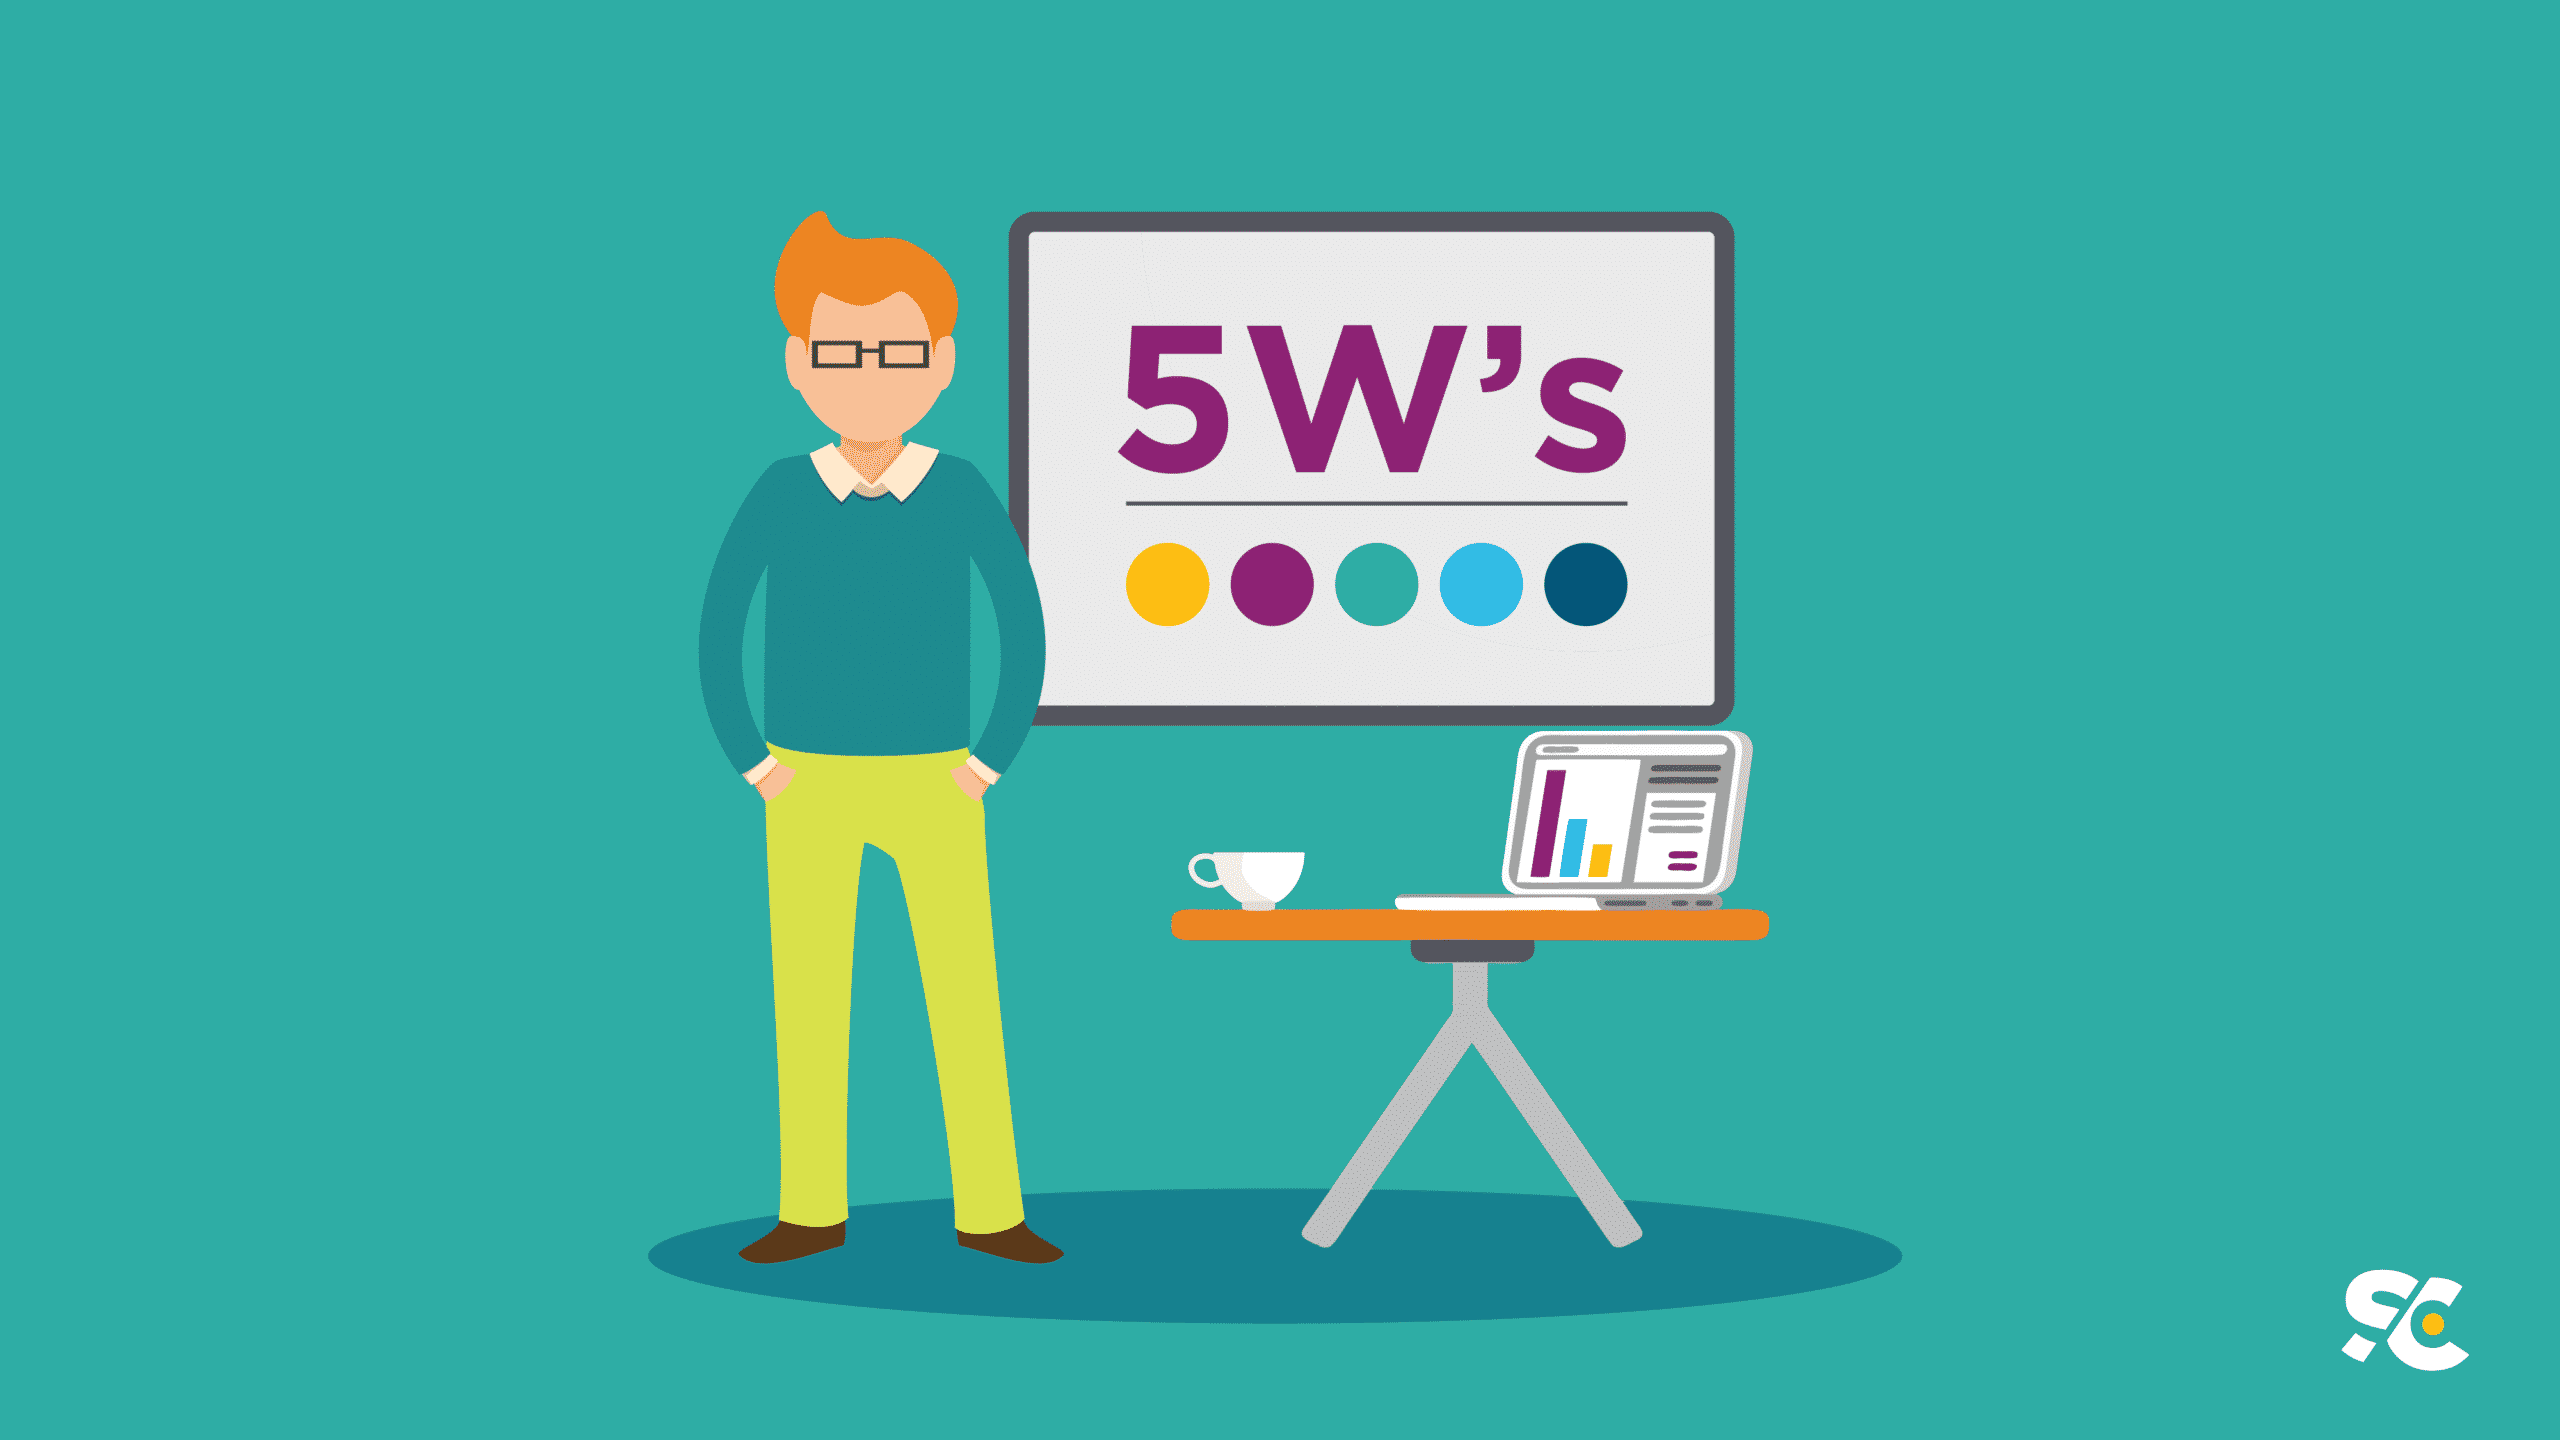 The 5 W's of Effective Presentation Preparation